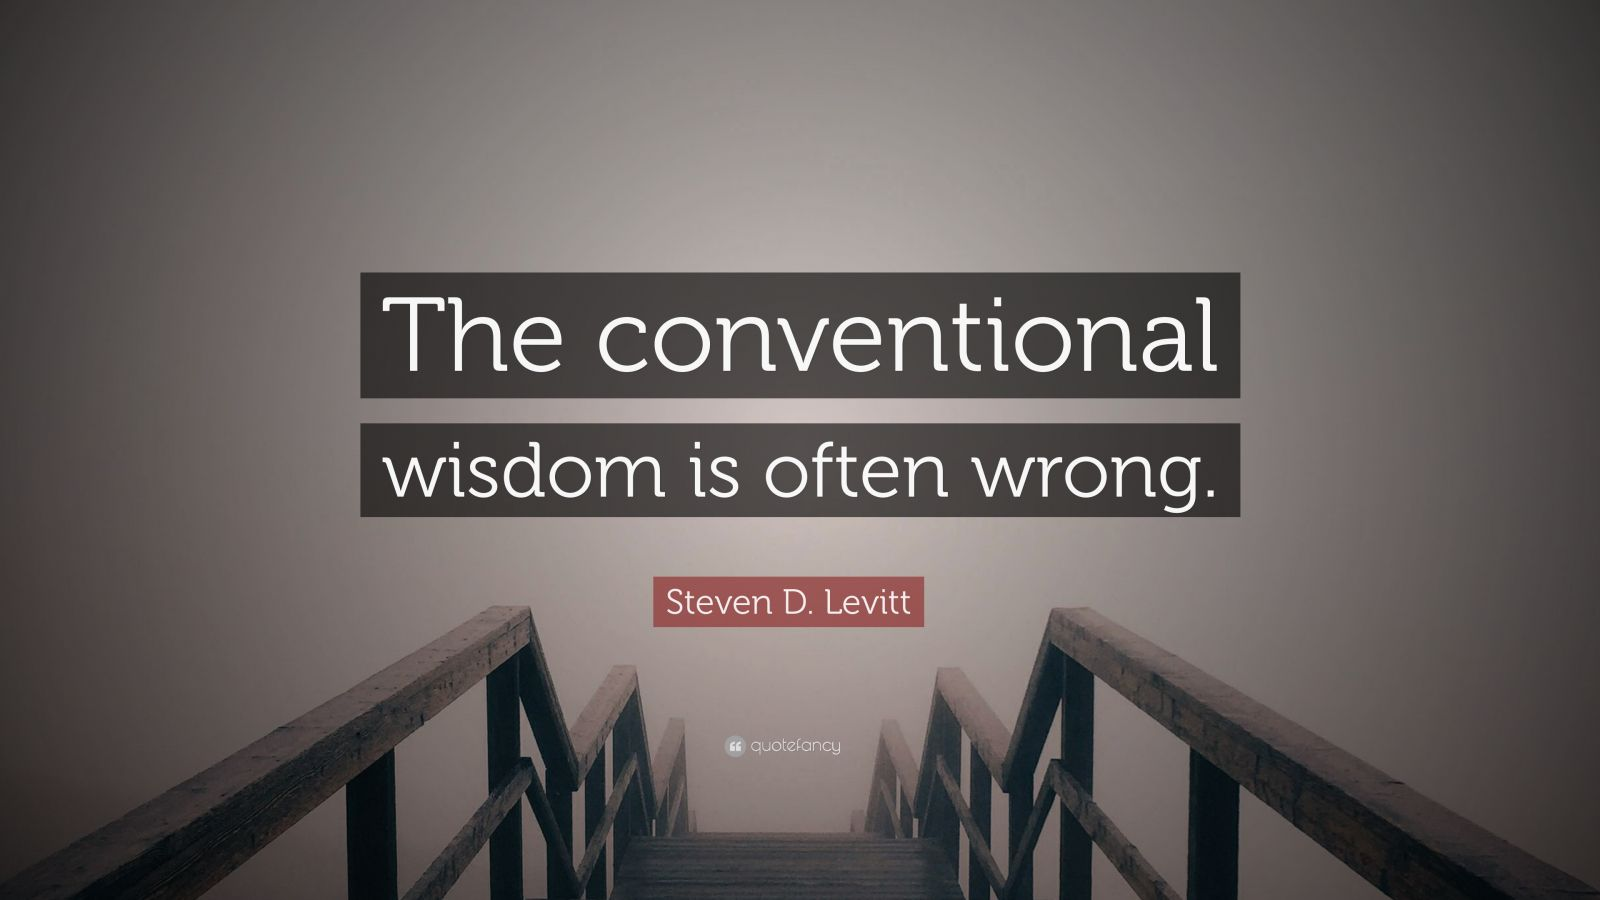 steven levitt and conventional wisdom But steven d levitt is not a typical economist he is a much-heralded scholar who studies the riddles of everyday life—from cheating and crime to sports and child-rearing—and whose conclusions turn the conventional wisdom on its head.